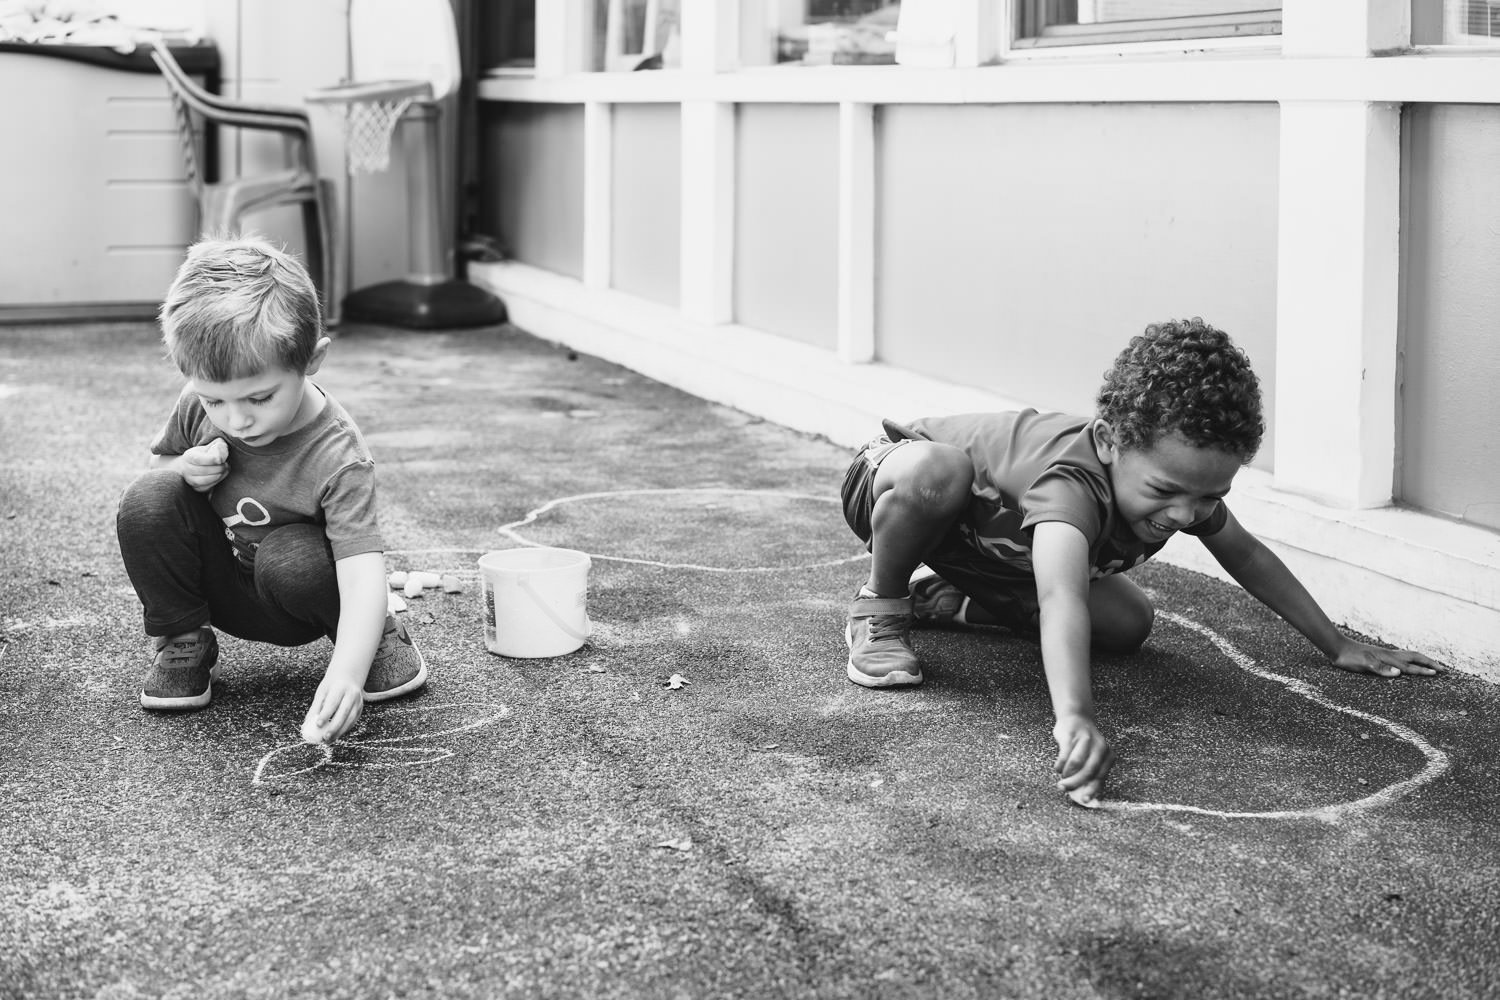 Two boys draw on the cement with chalk.